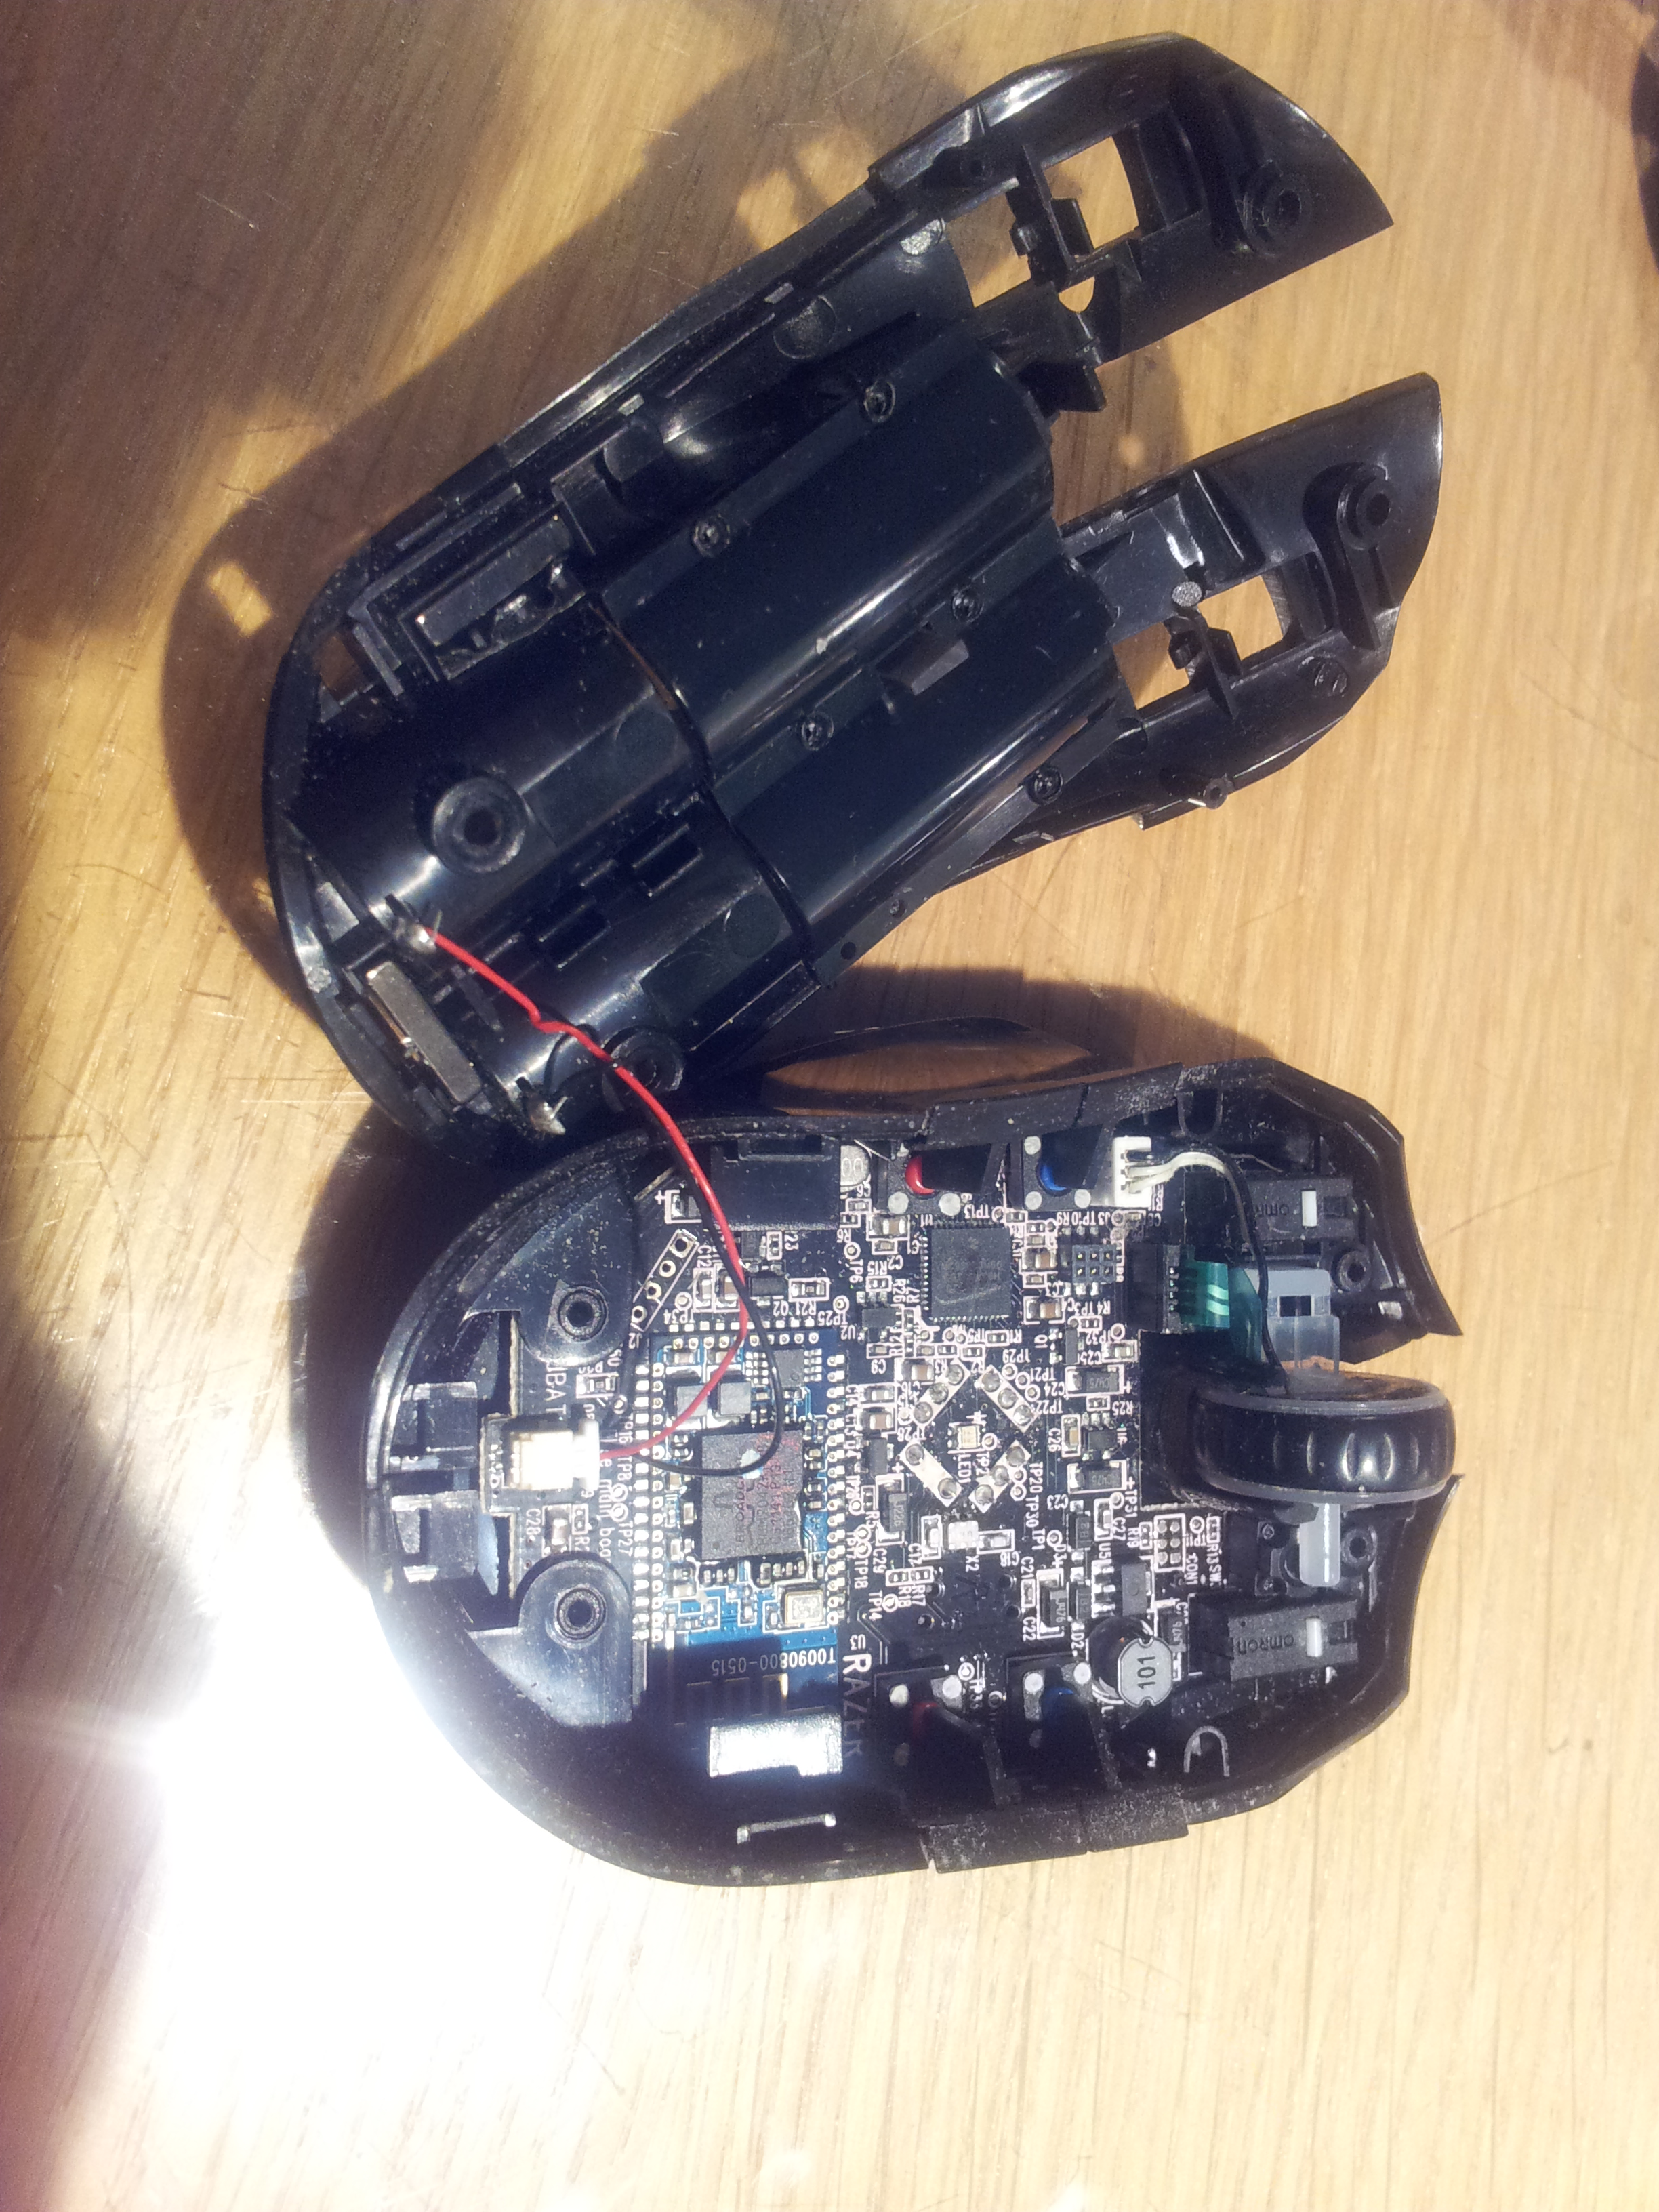 Tearing down a Razer Orochi Bluetooth gaming mouse | Rip It Apart